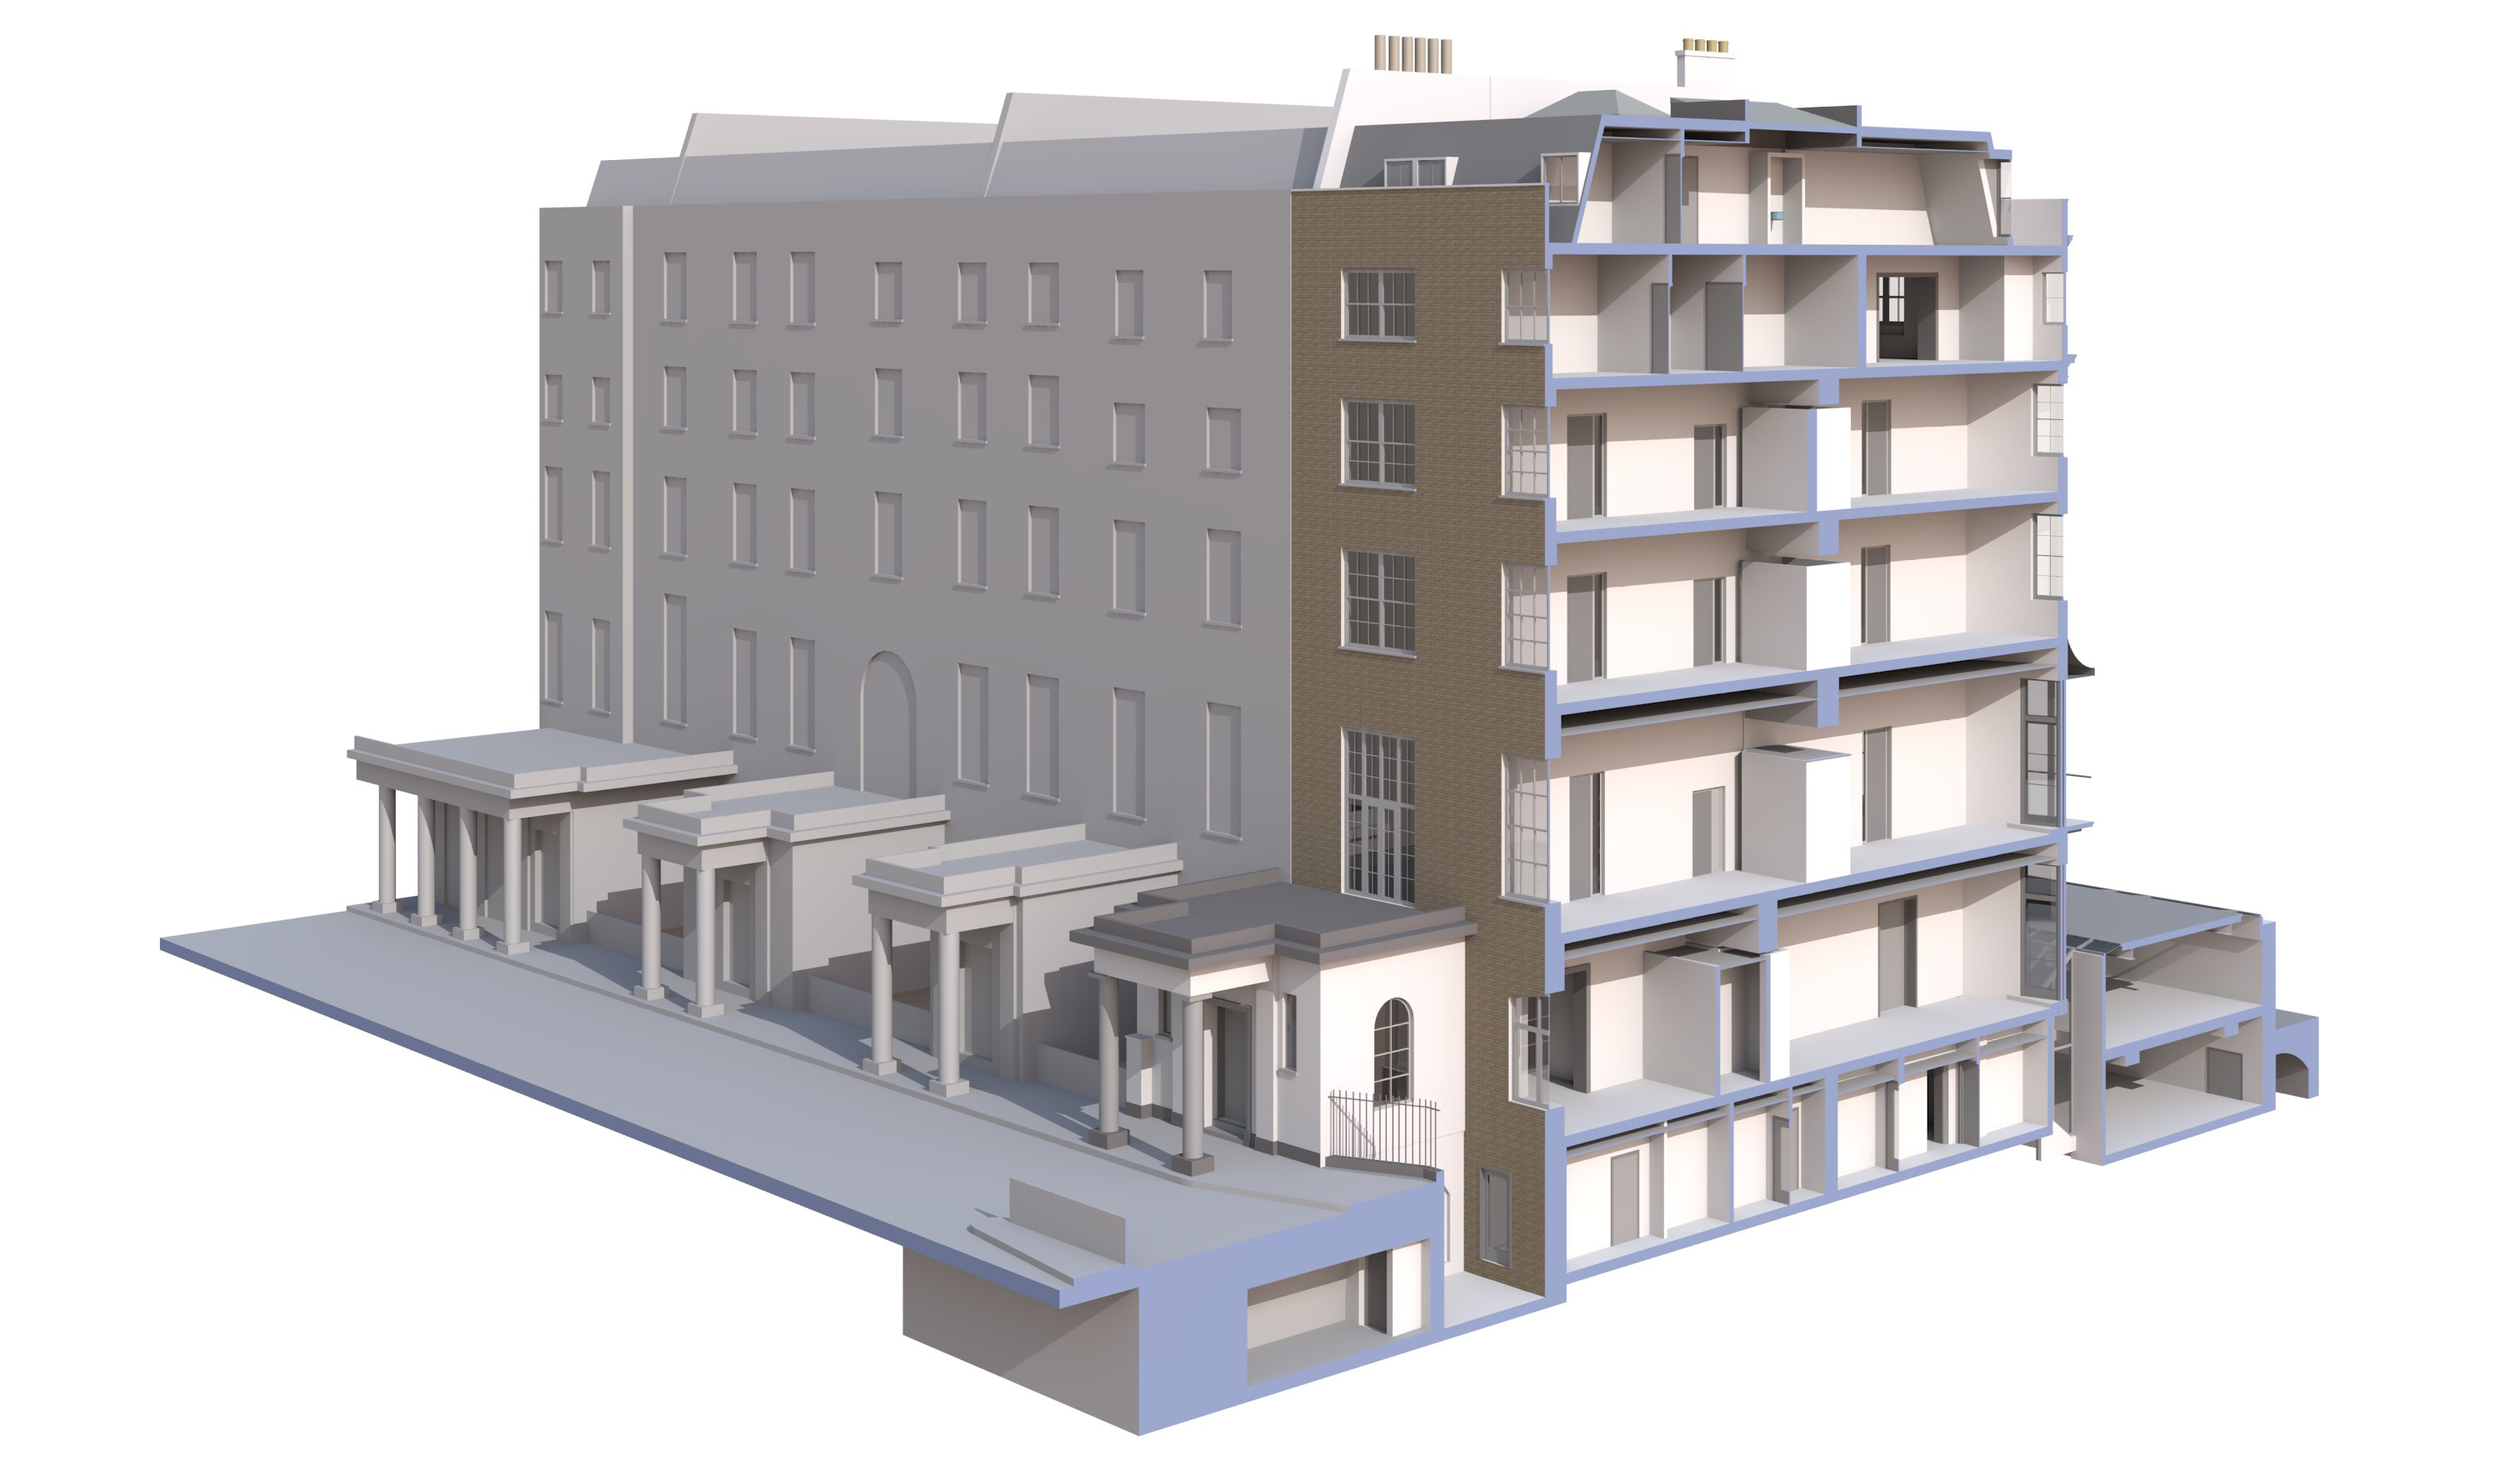 3. Detiled 3D model of townhouse from rear perspective with section though the building. Others houses are shown as basic 3D model.jpg